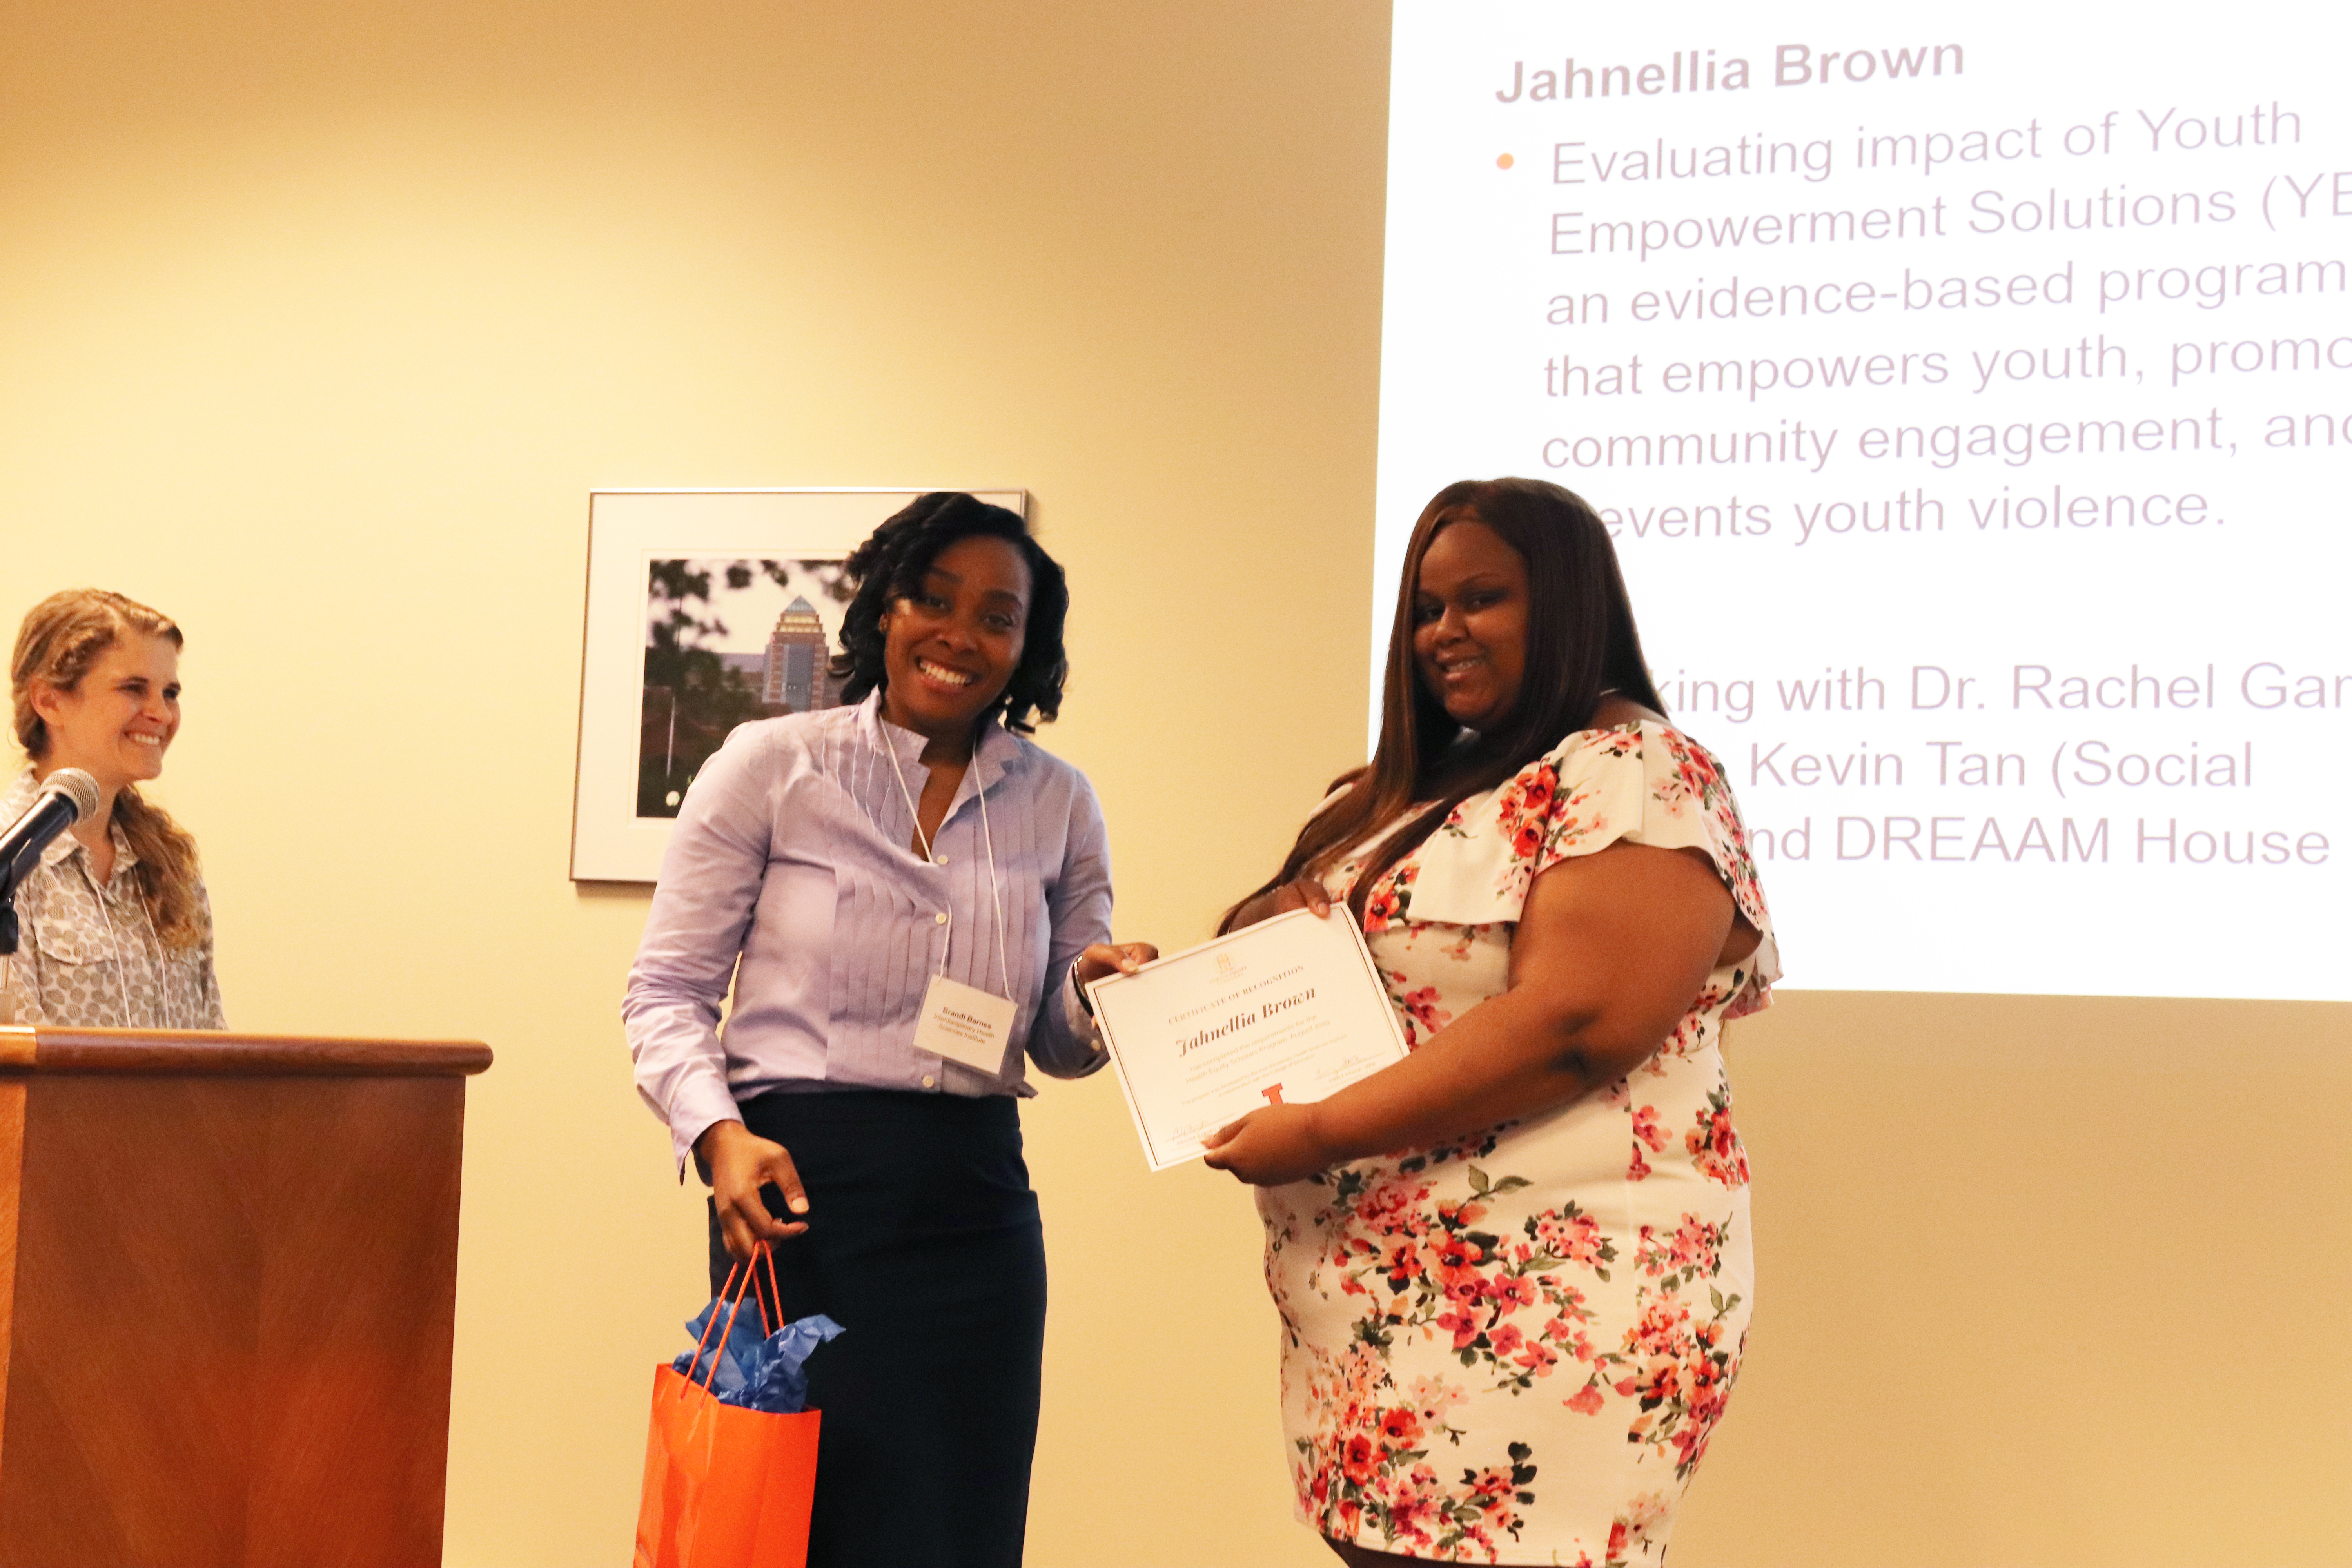 Jahnellia receiving her certificate from Health Equity Scholars program manager Brandi Barnes